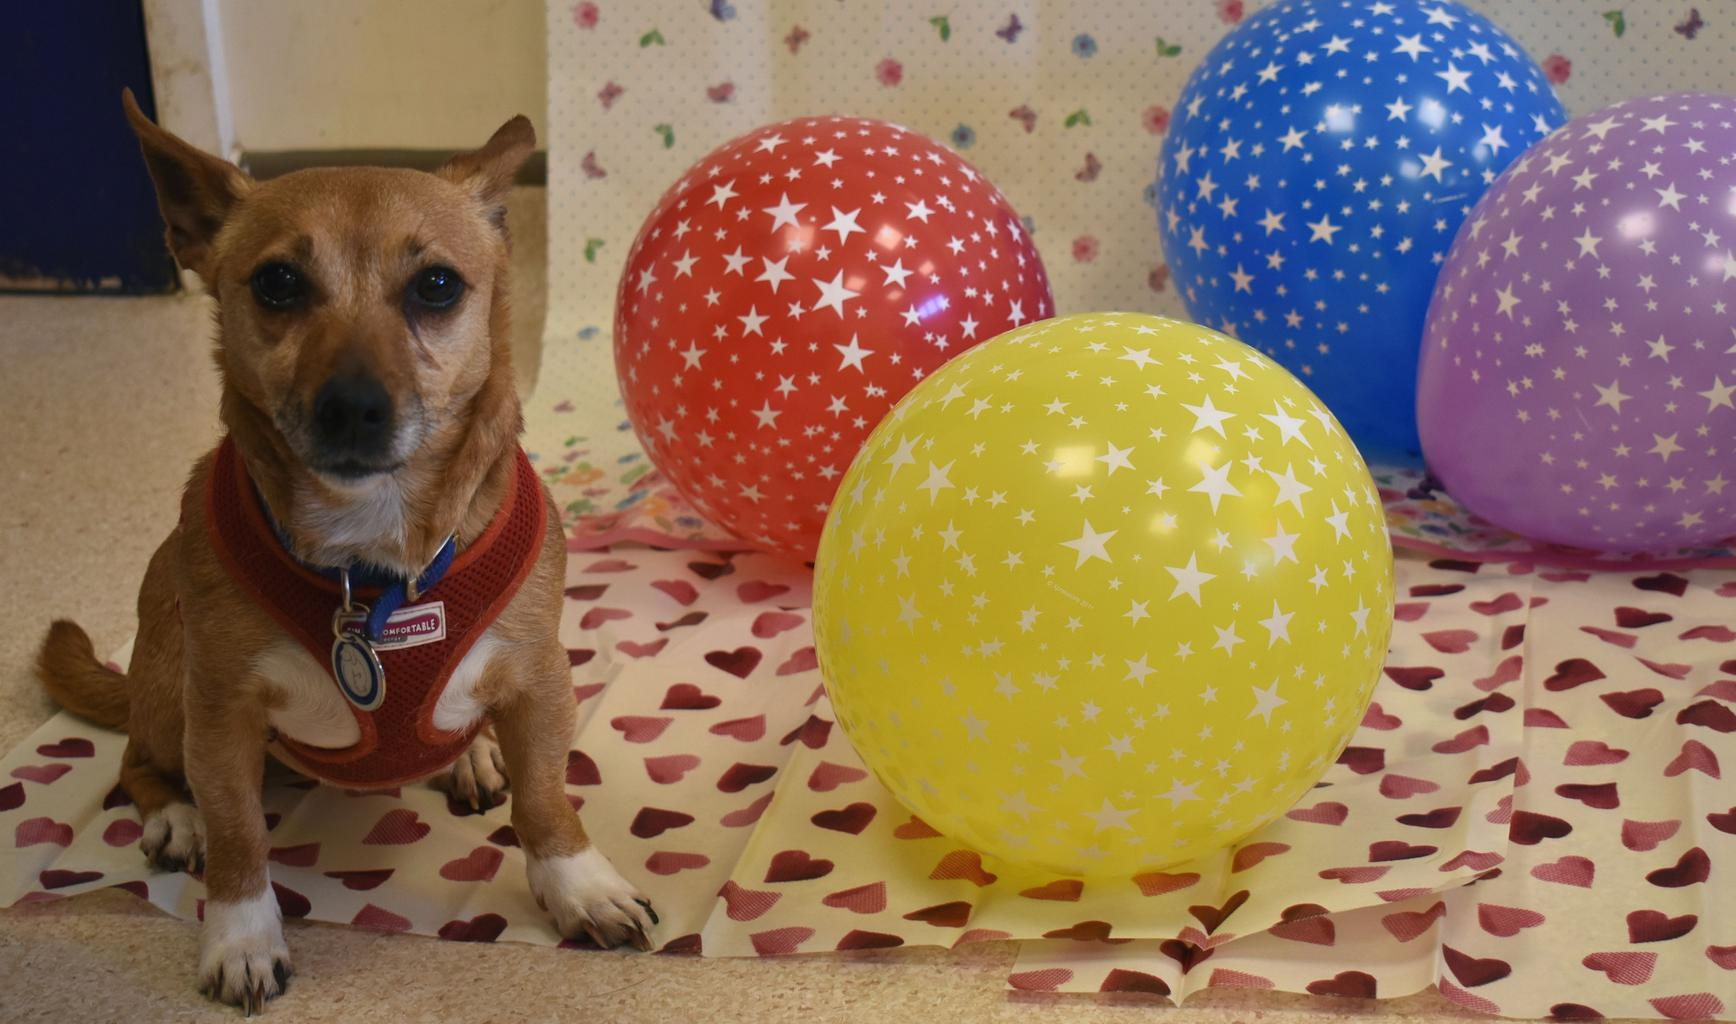 Honey celebrates two years at Brands Hatch. Tags: Battersea Dogs & Cats Home rescue dog